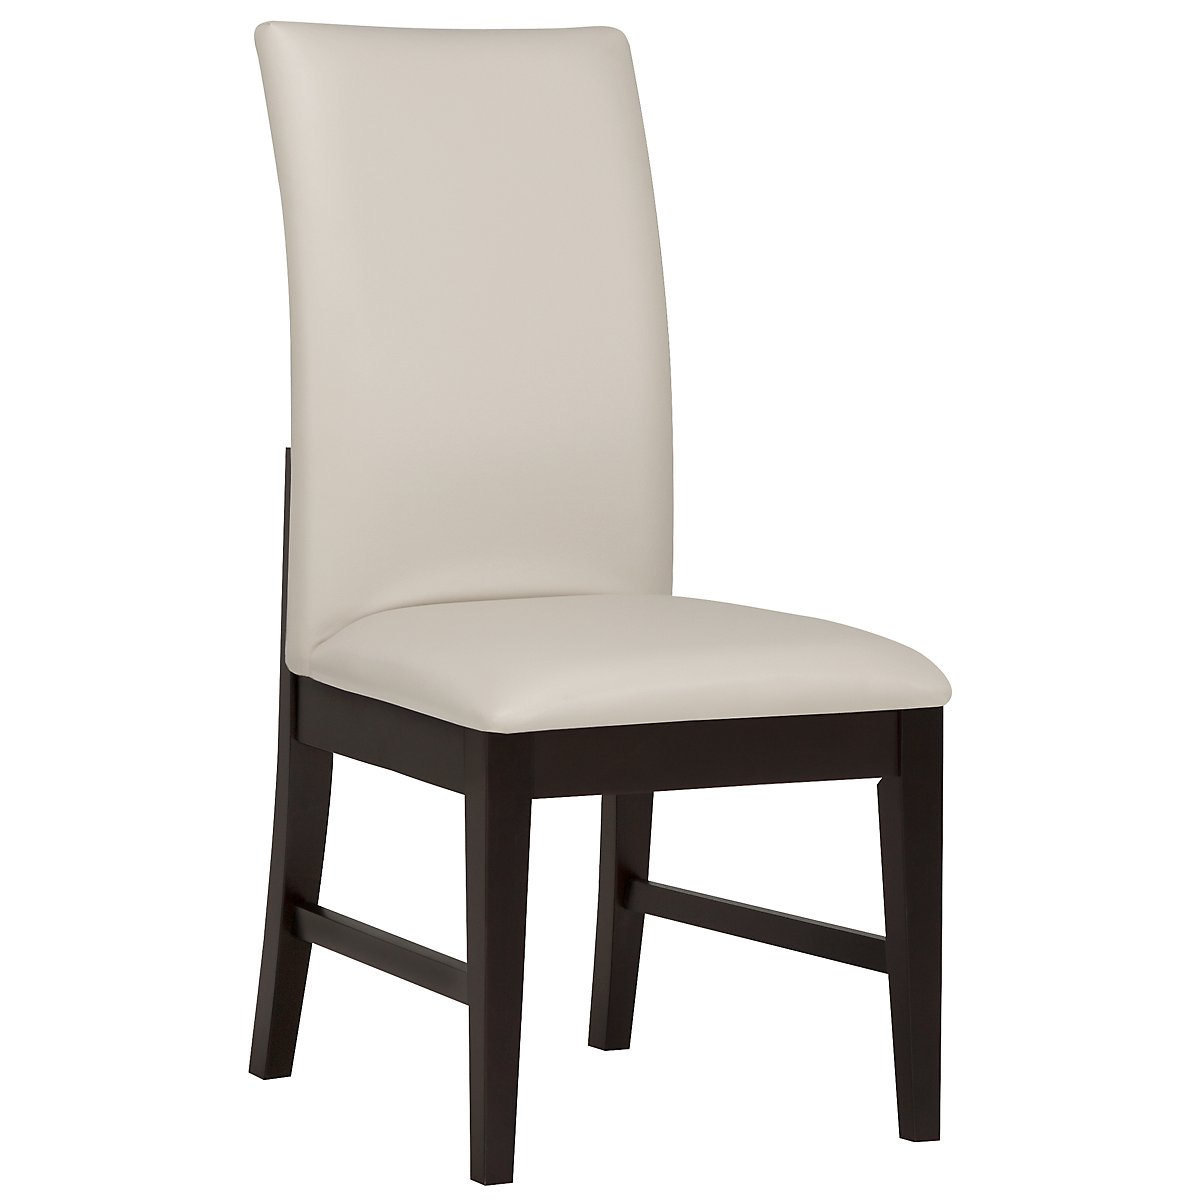 Encore2 Dark Tone Bonded Leather Upholstered Side Chair